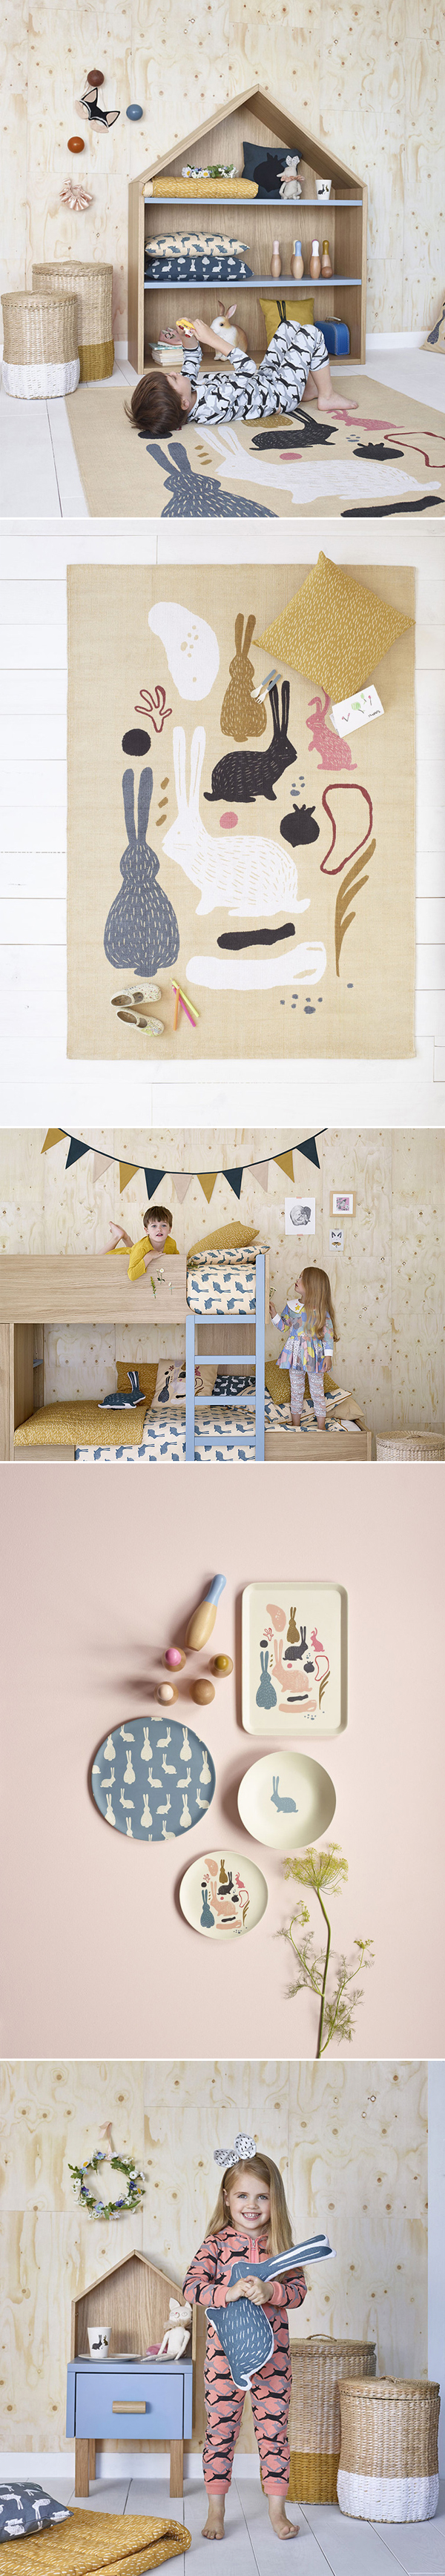 Milk & Habitat Collaboration | Kid's Bedroom + bunnies